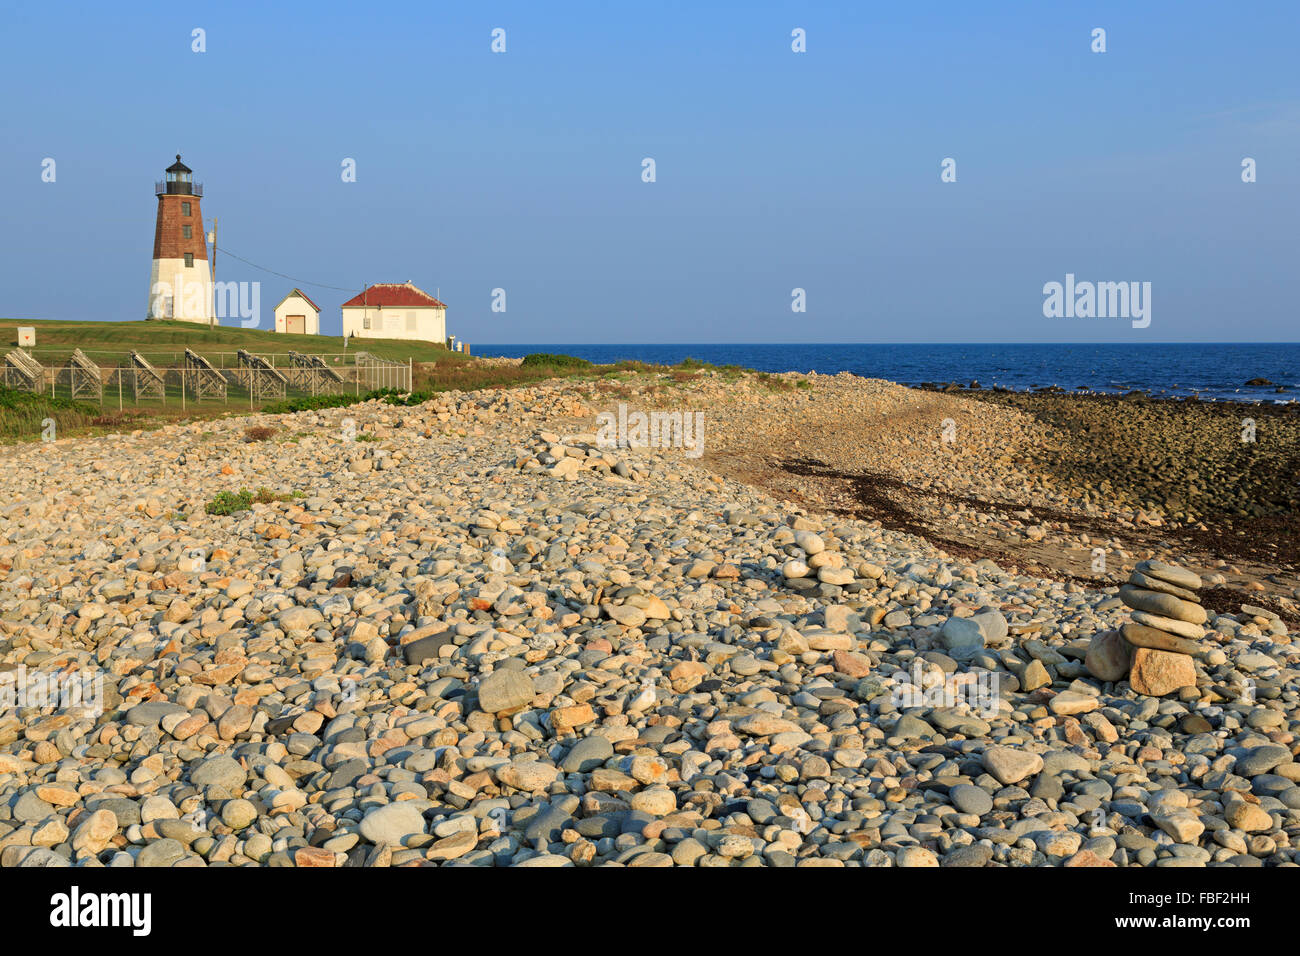 Point Judith Lighthouse, Rhode Island, USA - Stock Image